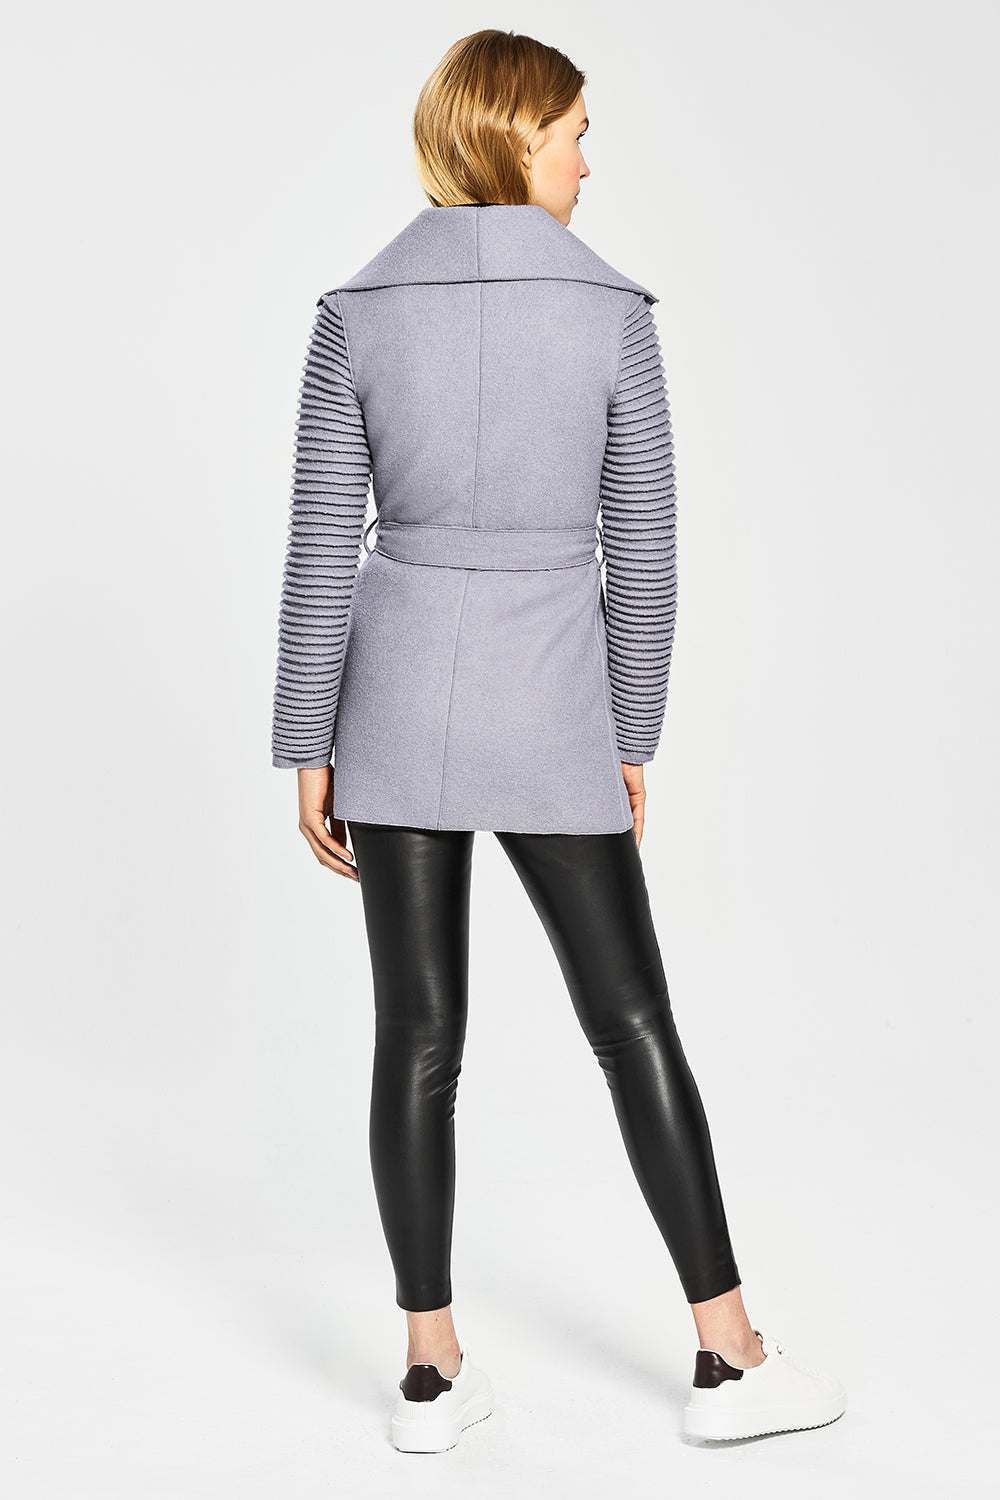 Sentaler Wrap Coat with Ribbed Sleeves featured in Superfine Alpaca and available in Gull Grey. Seen from back.